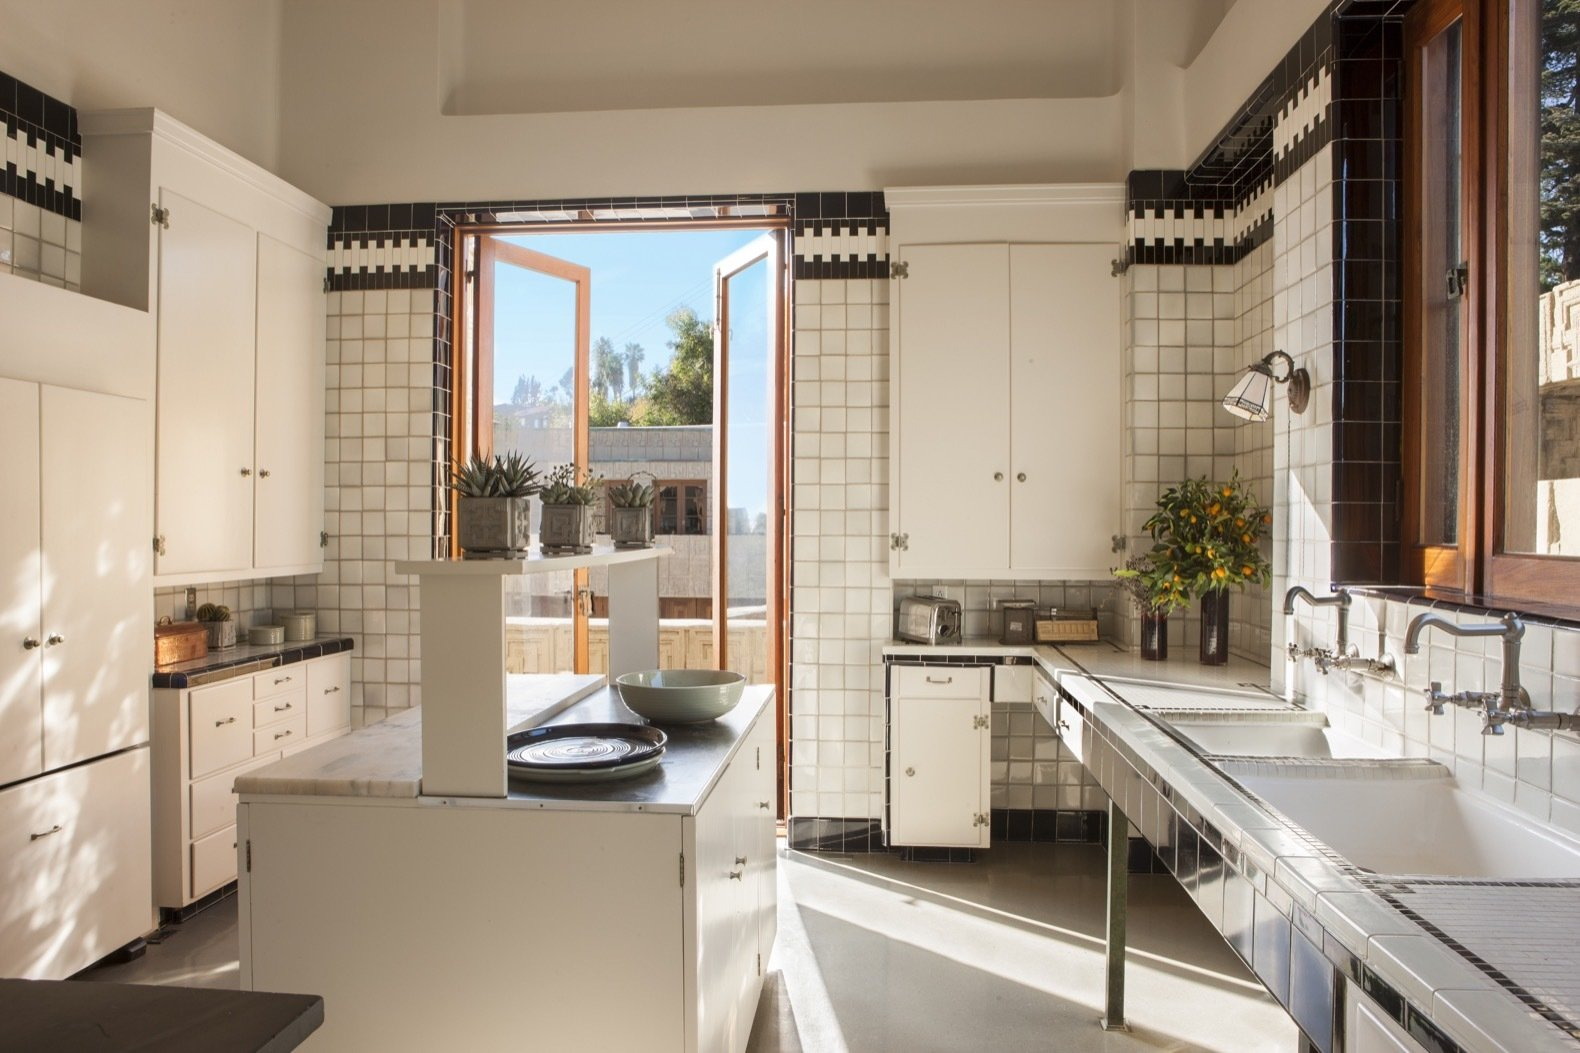 Kitchen, White Cabinet, Ceramic Tile Backsplashe, Wall Lighting, Marble Counter, and Undermount Sink Lovely tilework lines the restored kitchen.    Photo 21 of 23 in Frank Lloyd Wright's Iconic Ennis House Is Listed For $23M